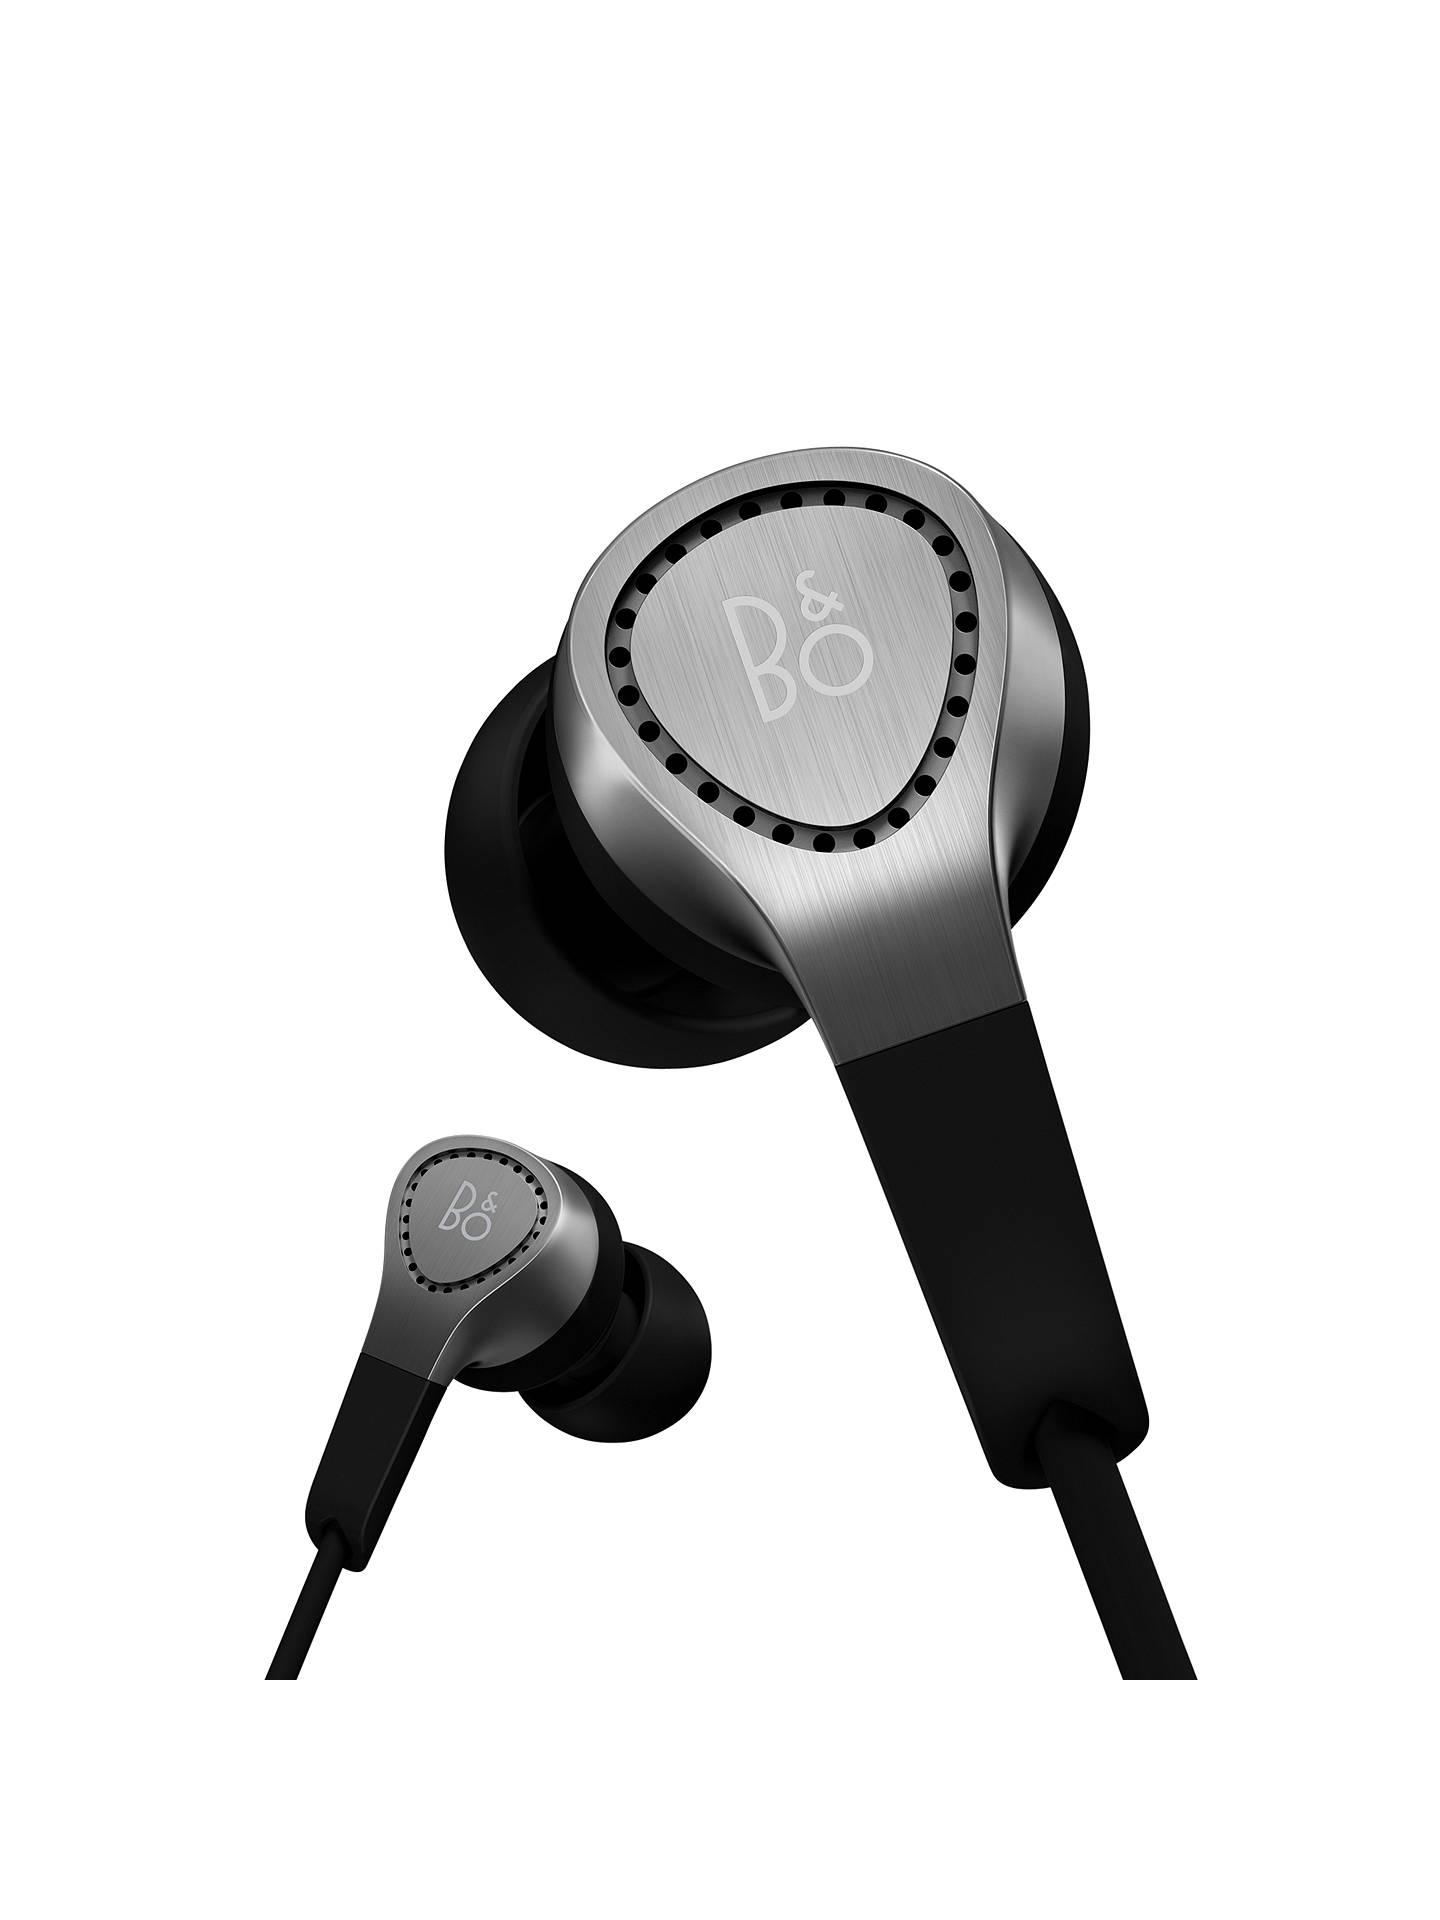 BuyBang & Olufsen Beoplay H3 In-Ear Headphones with Mic/Remote for iOS Devices, Silver Online at johnlewis.com